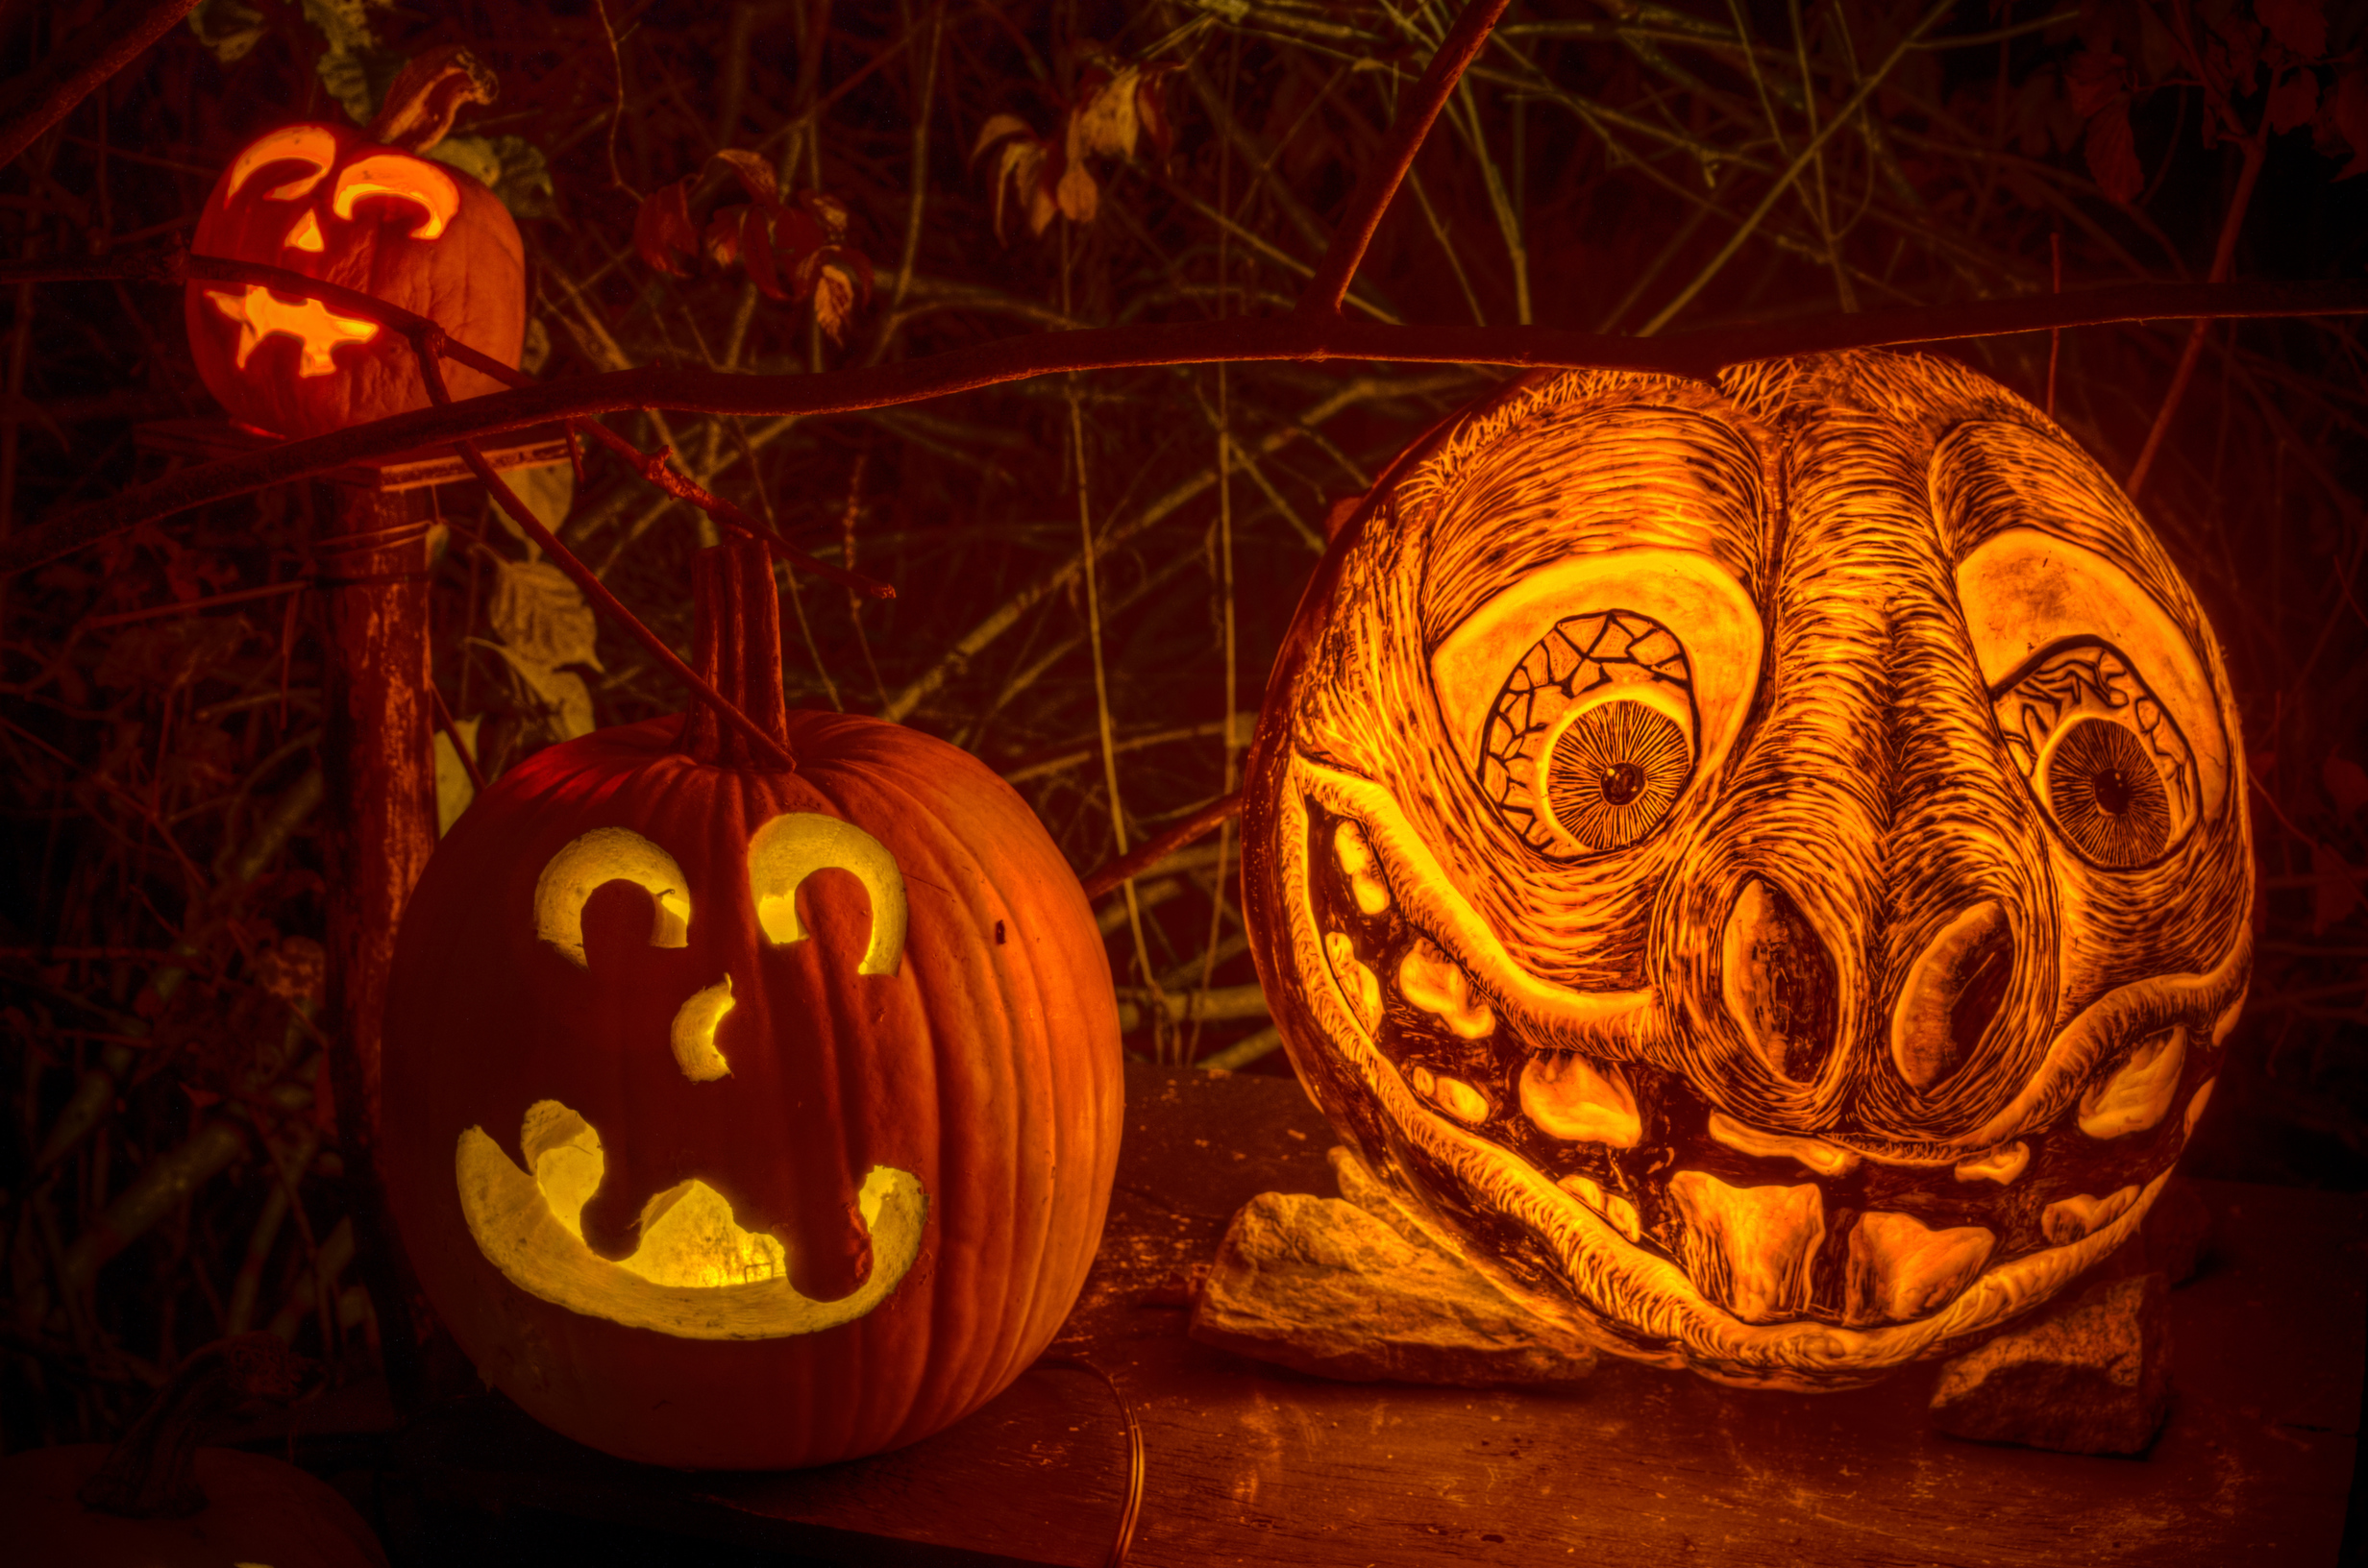 Mindblowing Pumpkin Carvings Creative Bloq - Mind blowing pumpkin carvings by ray villafane 2